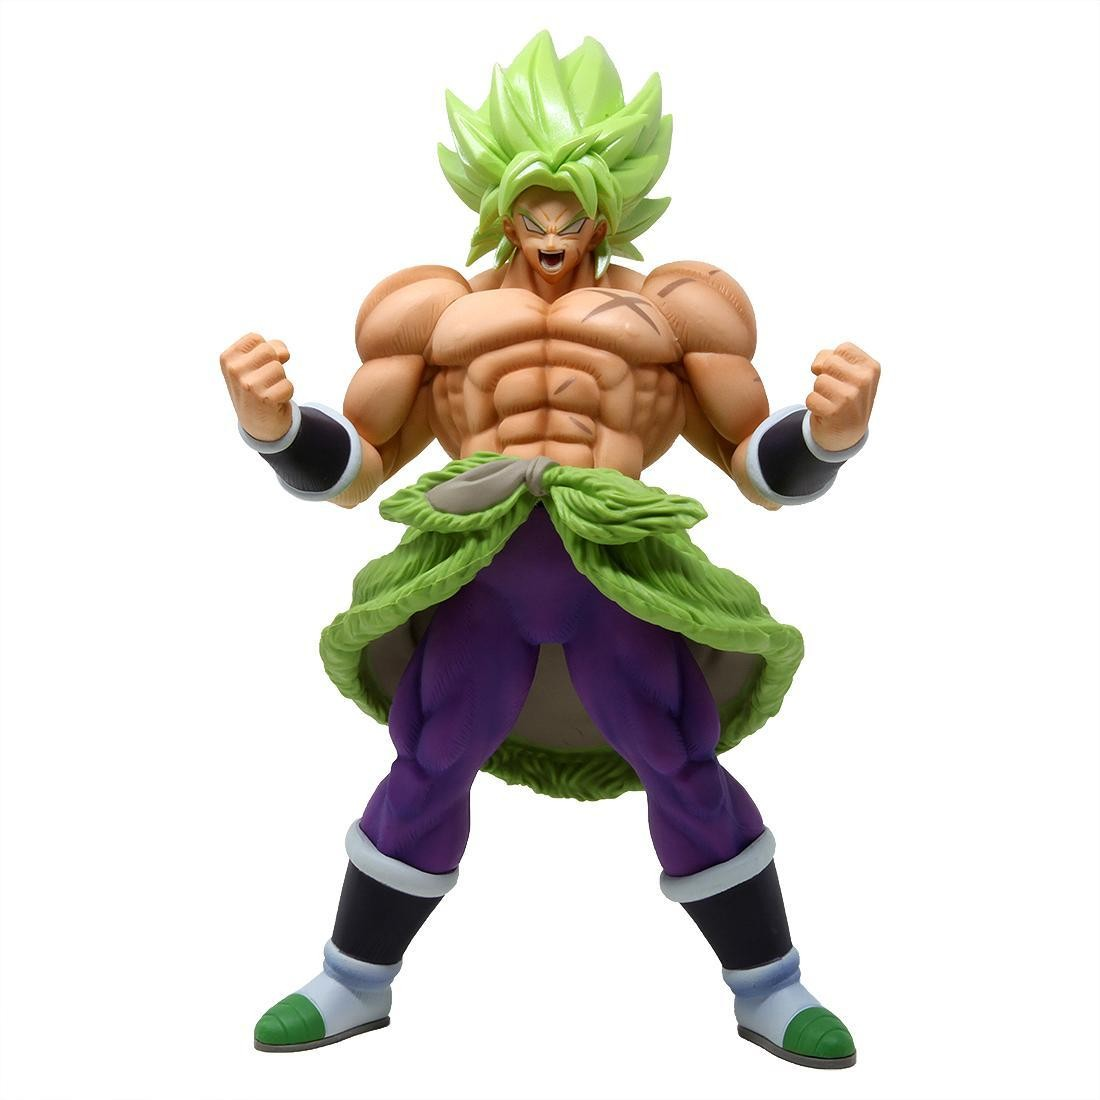 Banpresto Dragon Ball Super the Movie Chokoku Buyuden Super Saiyan Broly Full Power Figure (green)